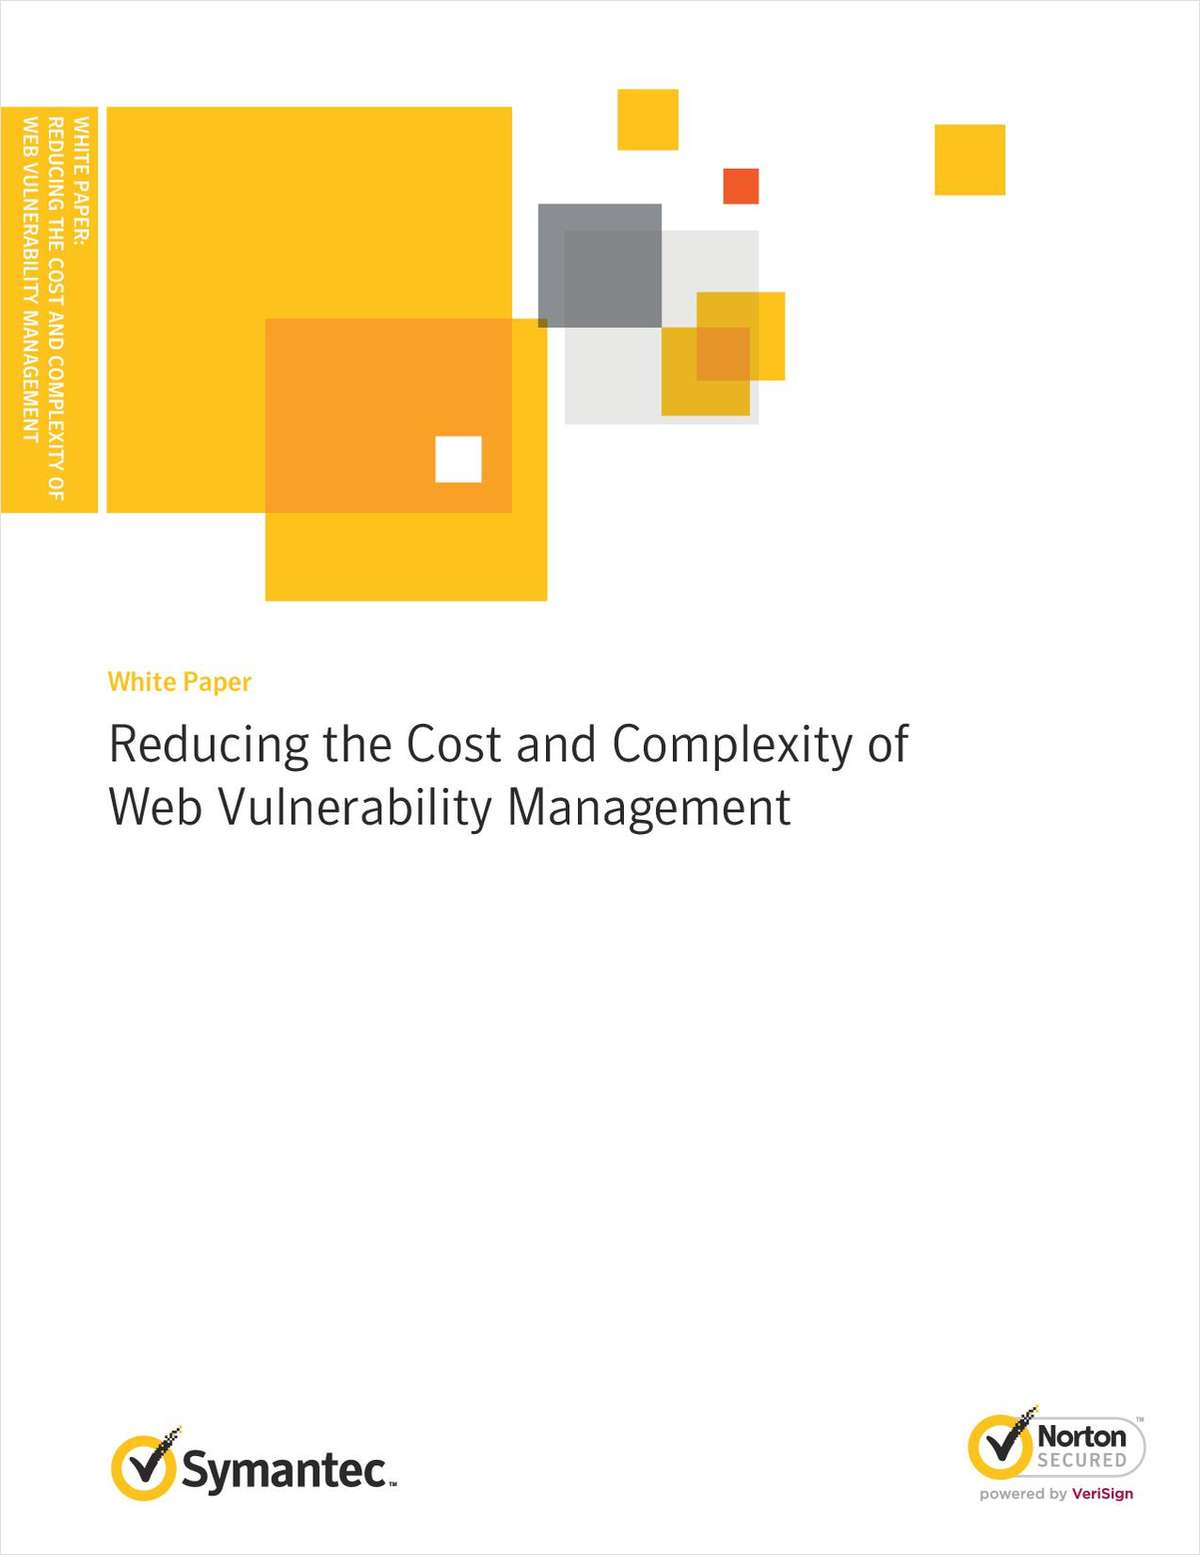 Reducing the Cost and Complexity of Web Vulnerability Management